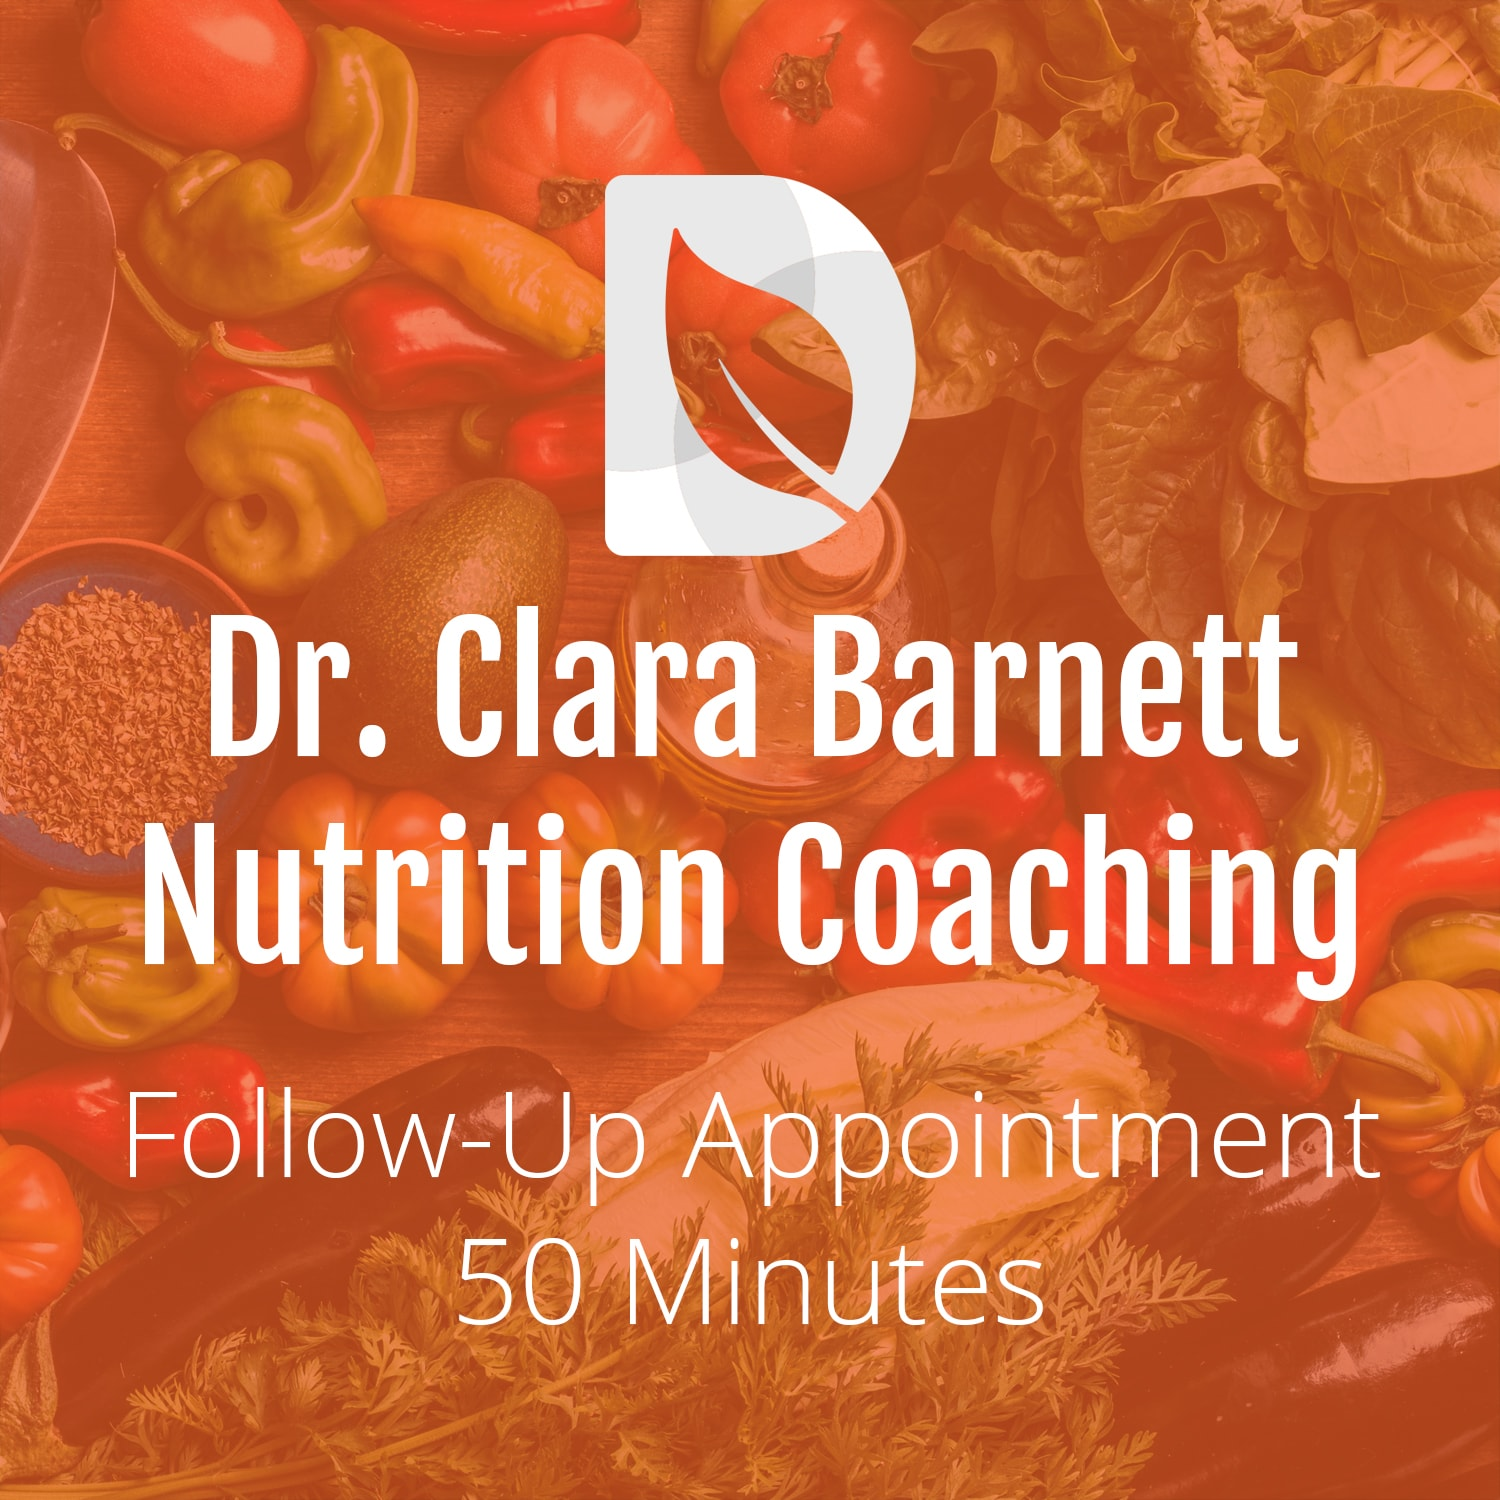 Nutrition Coaching: 50 Minute Follow-Up Appointment